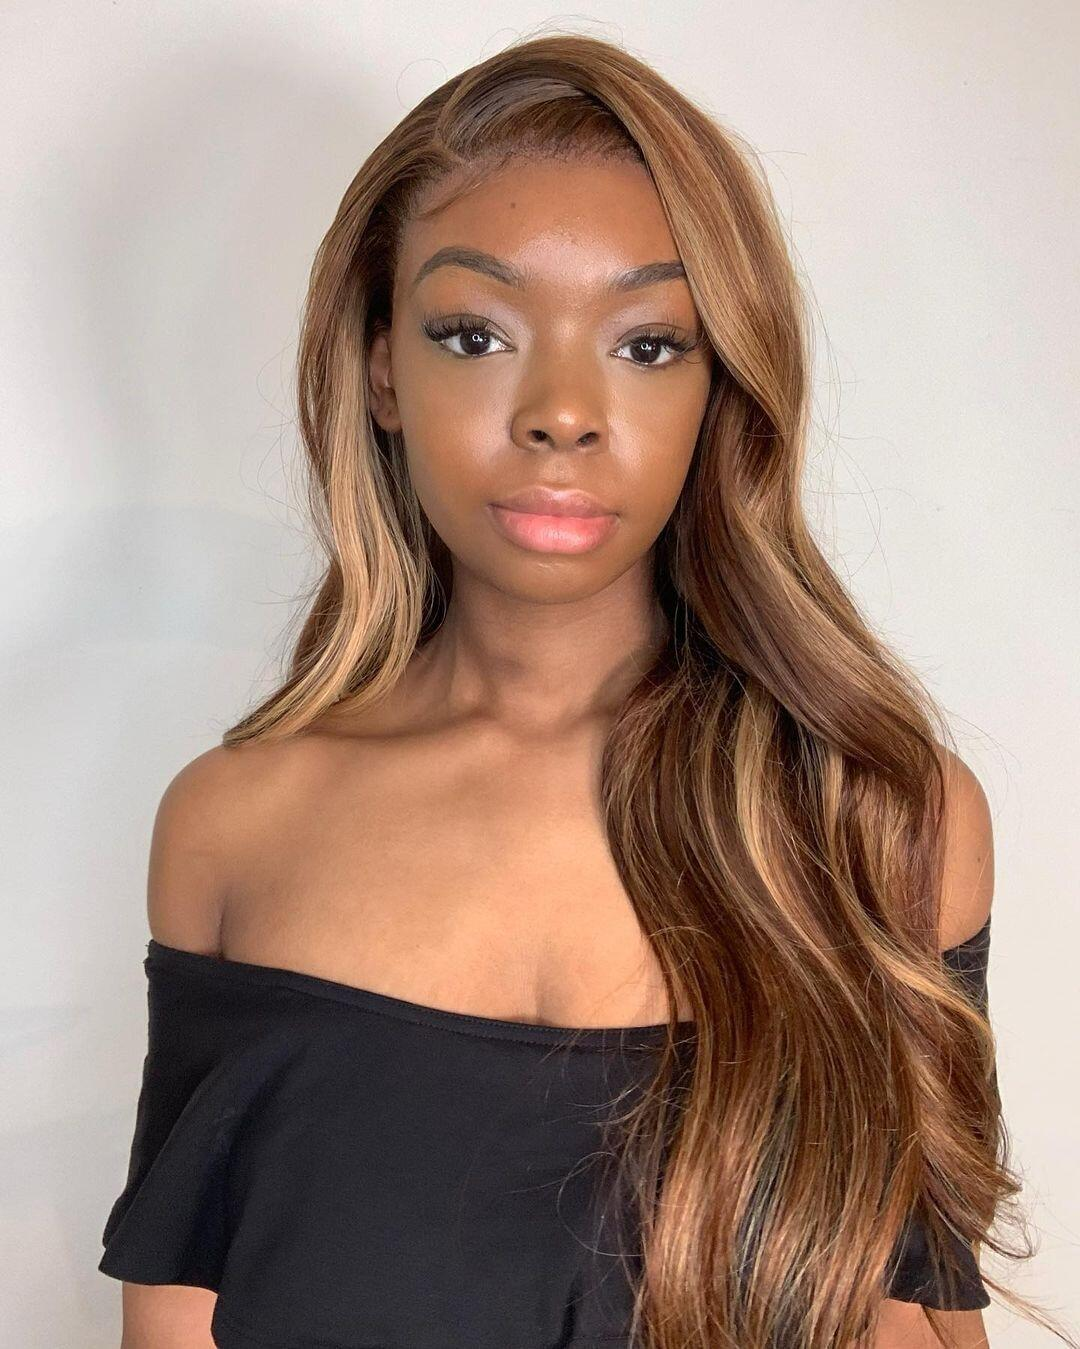 hair is very beautiful, the delivery came very very fast! hair is nice soft and shiny and long. quality is good and healthy. will definitely be ordering again I shall say.the wig looks just like the pictures its so pretty and soft. the communication with